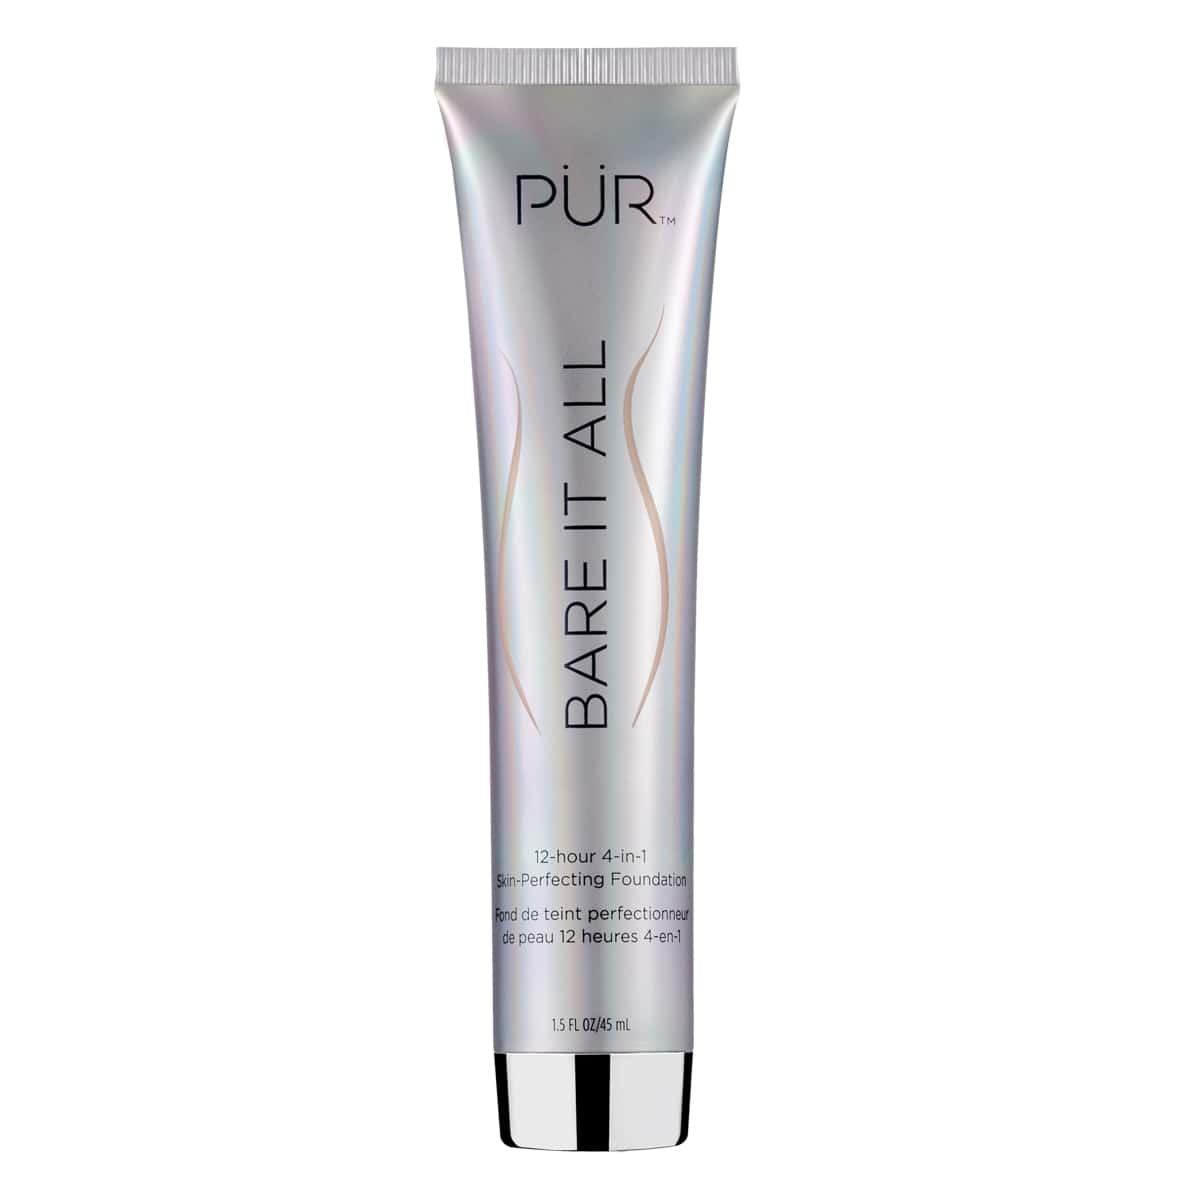 PÜR Bare it all 4-in-1 Foundation Tan 45 ml